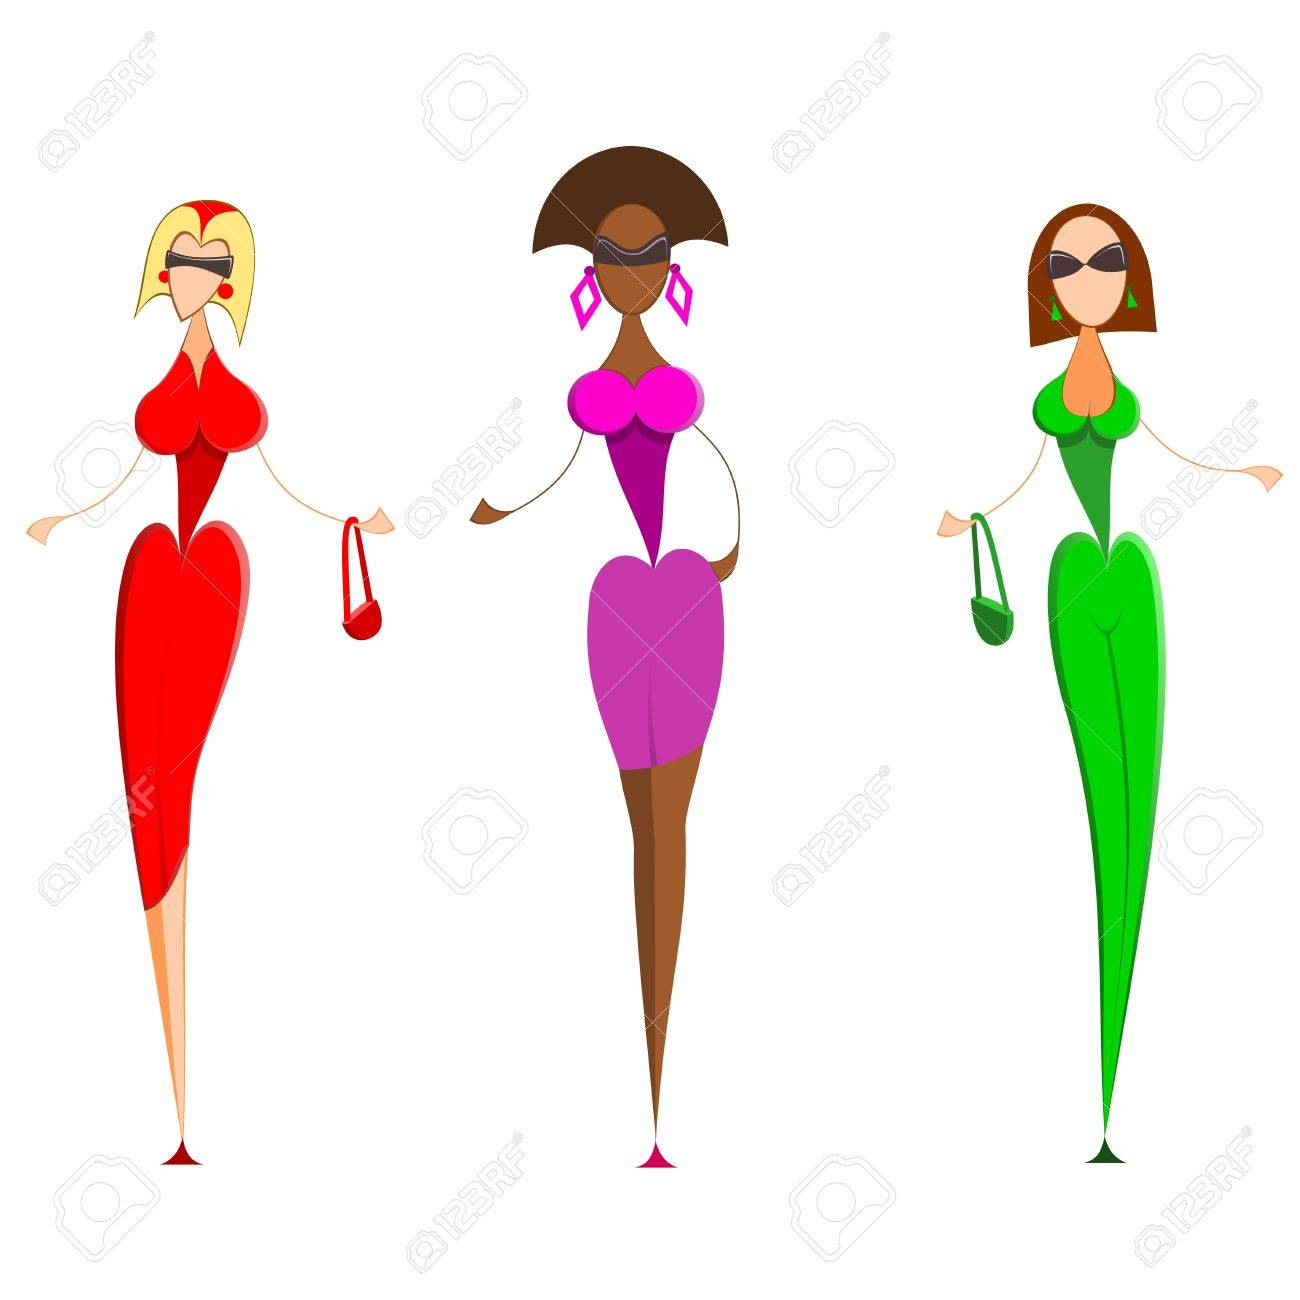 Fashion models.  Illustration of three fashion models. Women in red, blue and green dresses. Stock Vector - 10959788